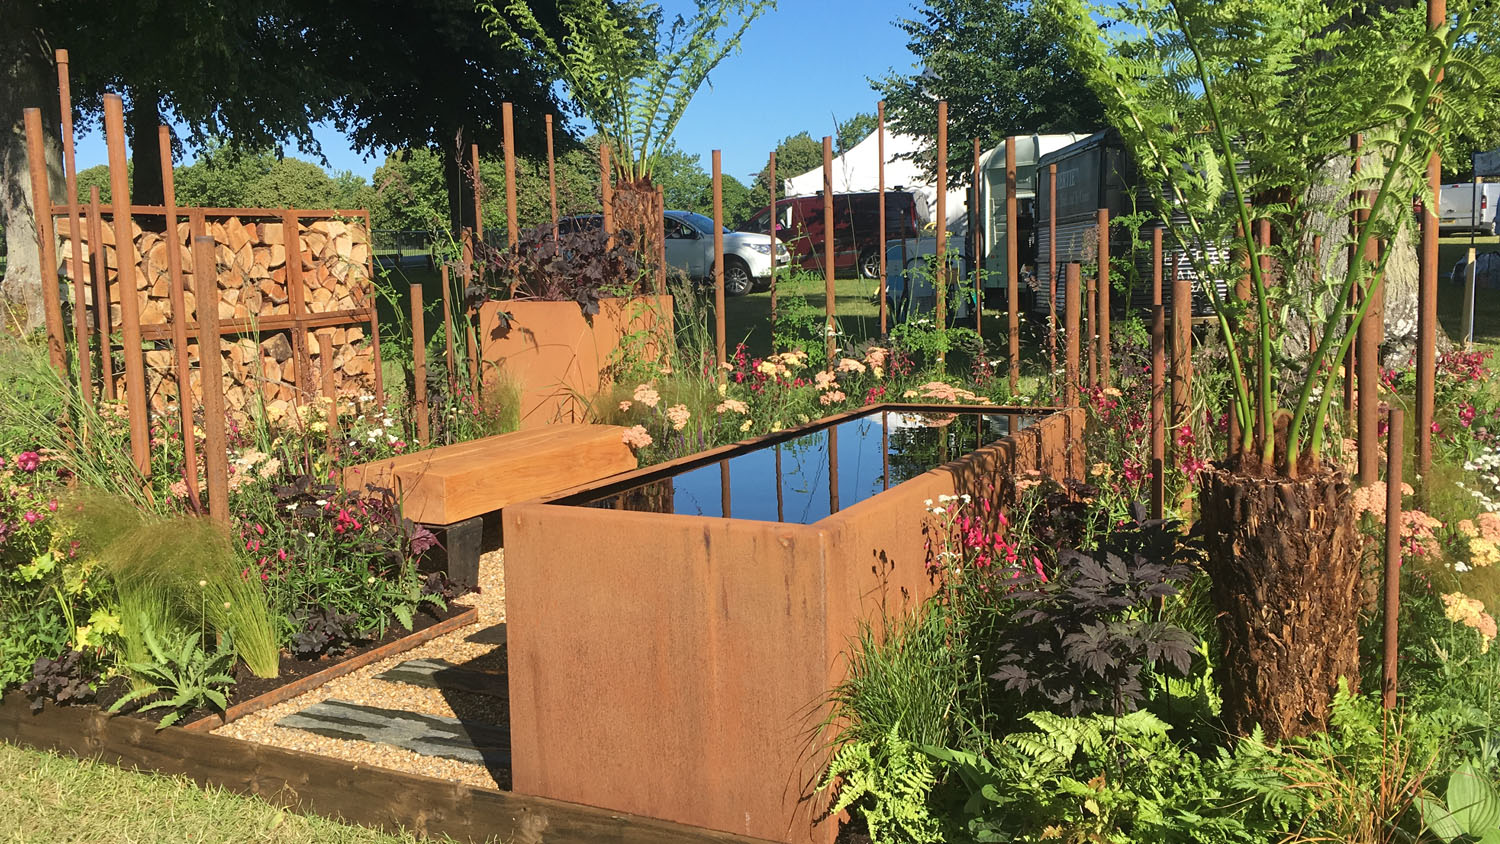 SlateWood Is The Bees Knees! Briony Doubleday of Bee's Gardens Wins Gold At Blenheim AND RHS Tatton!